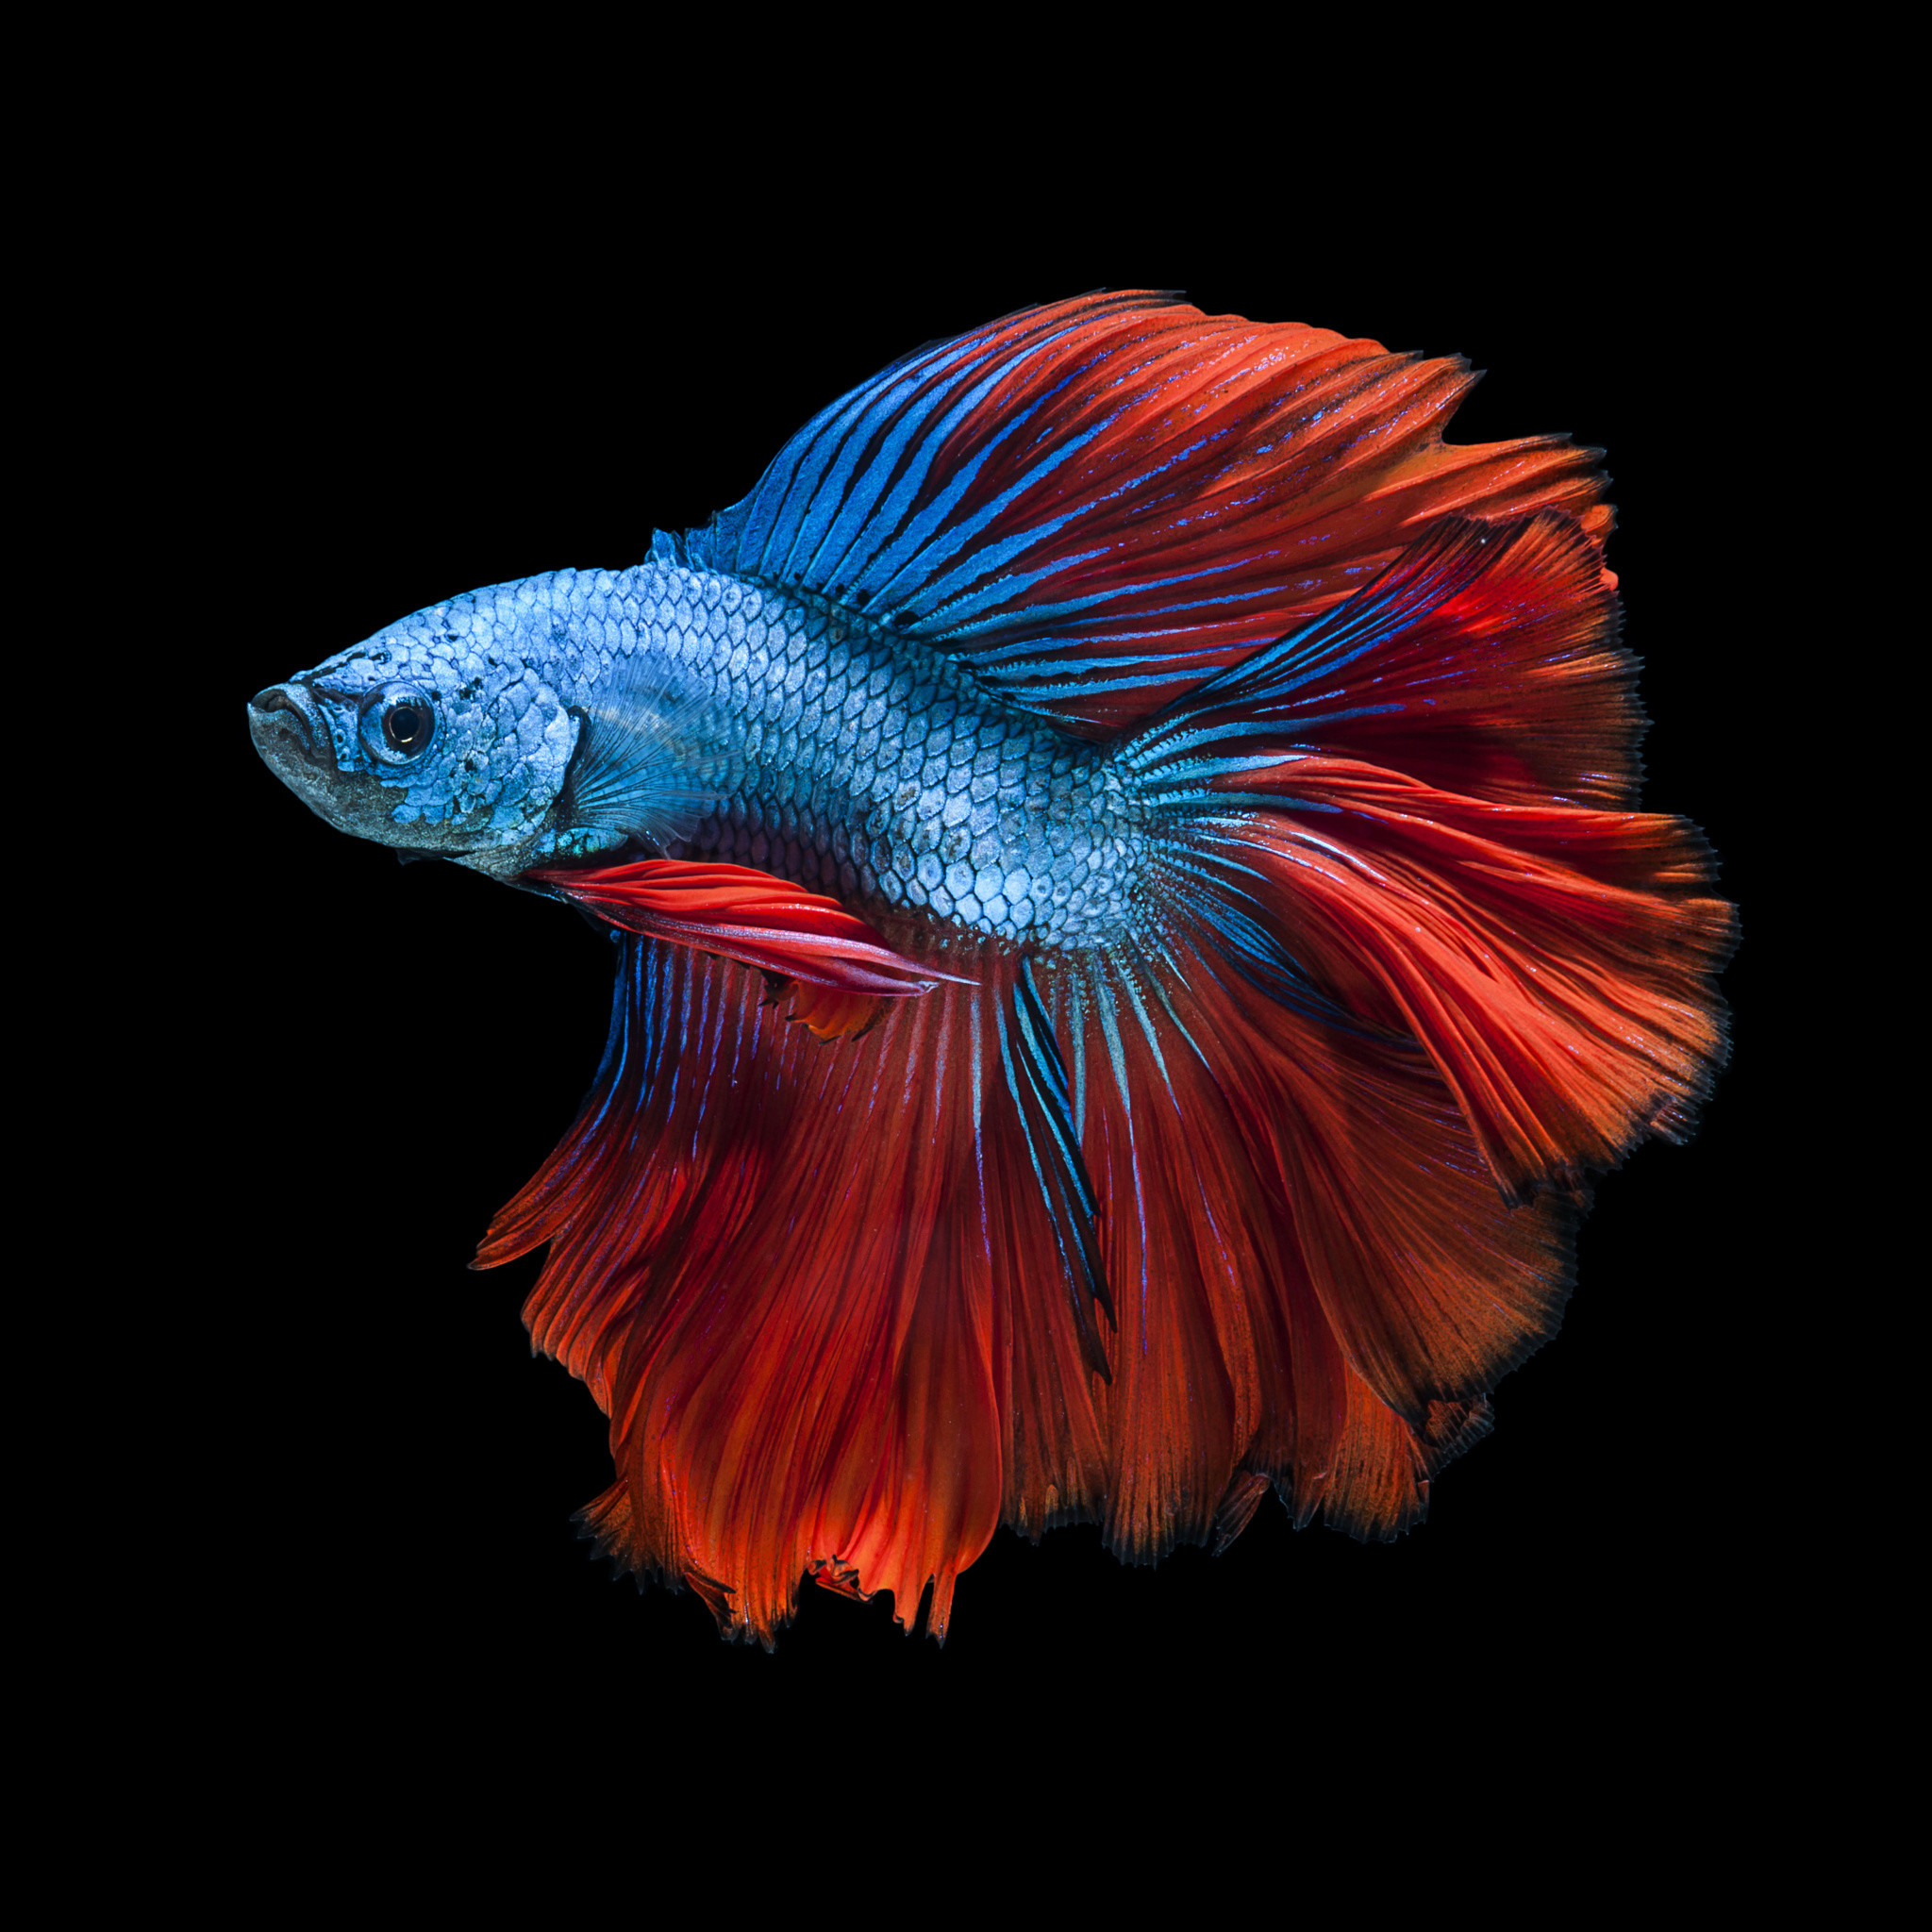 Red fish wallpaper for Betta fish colors